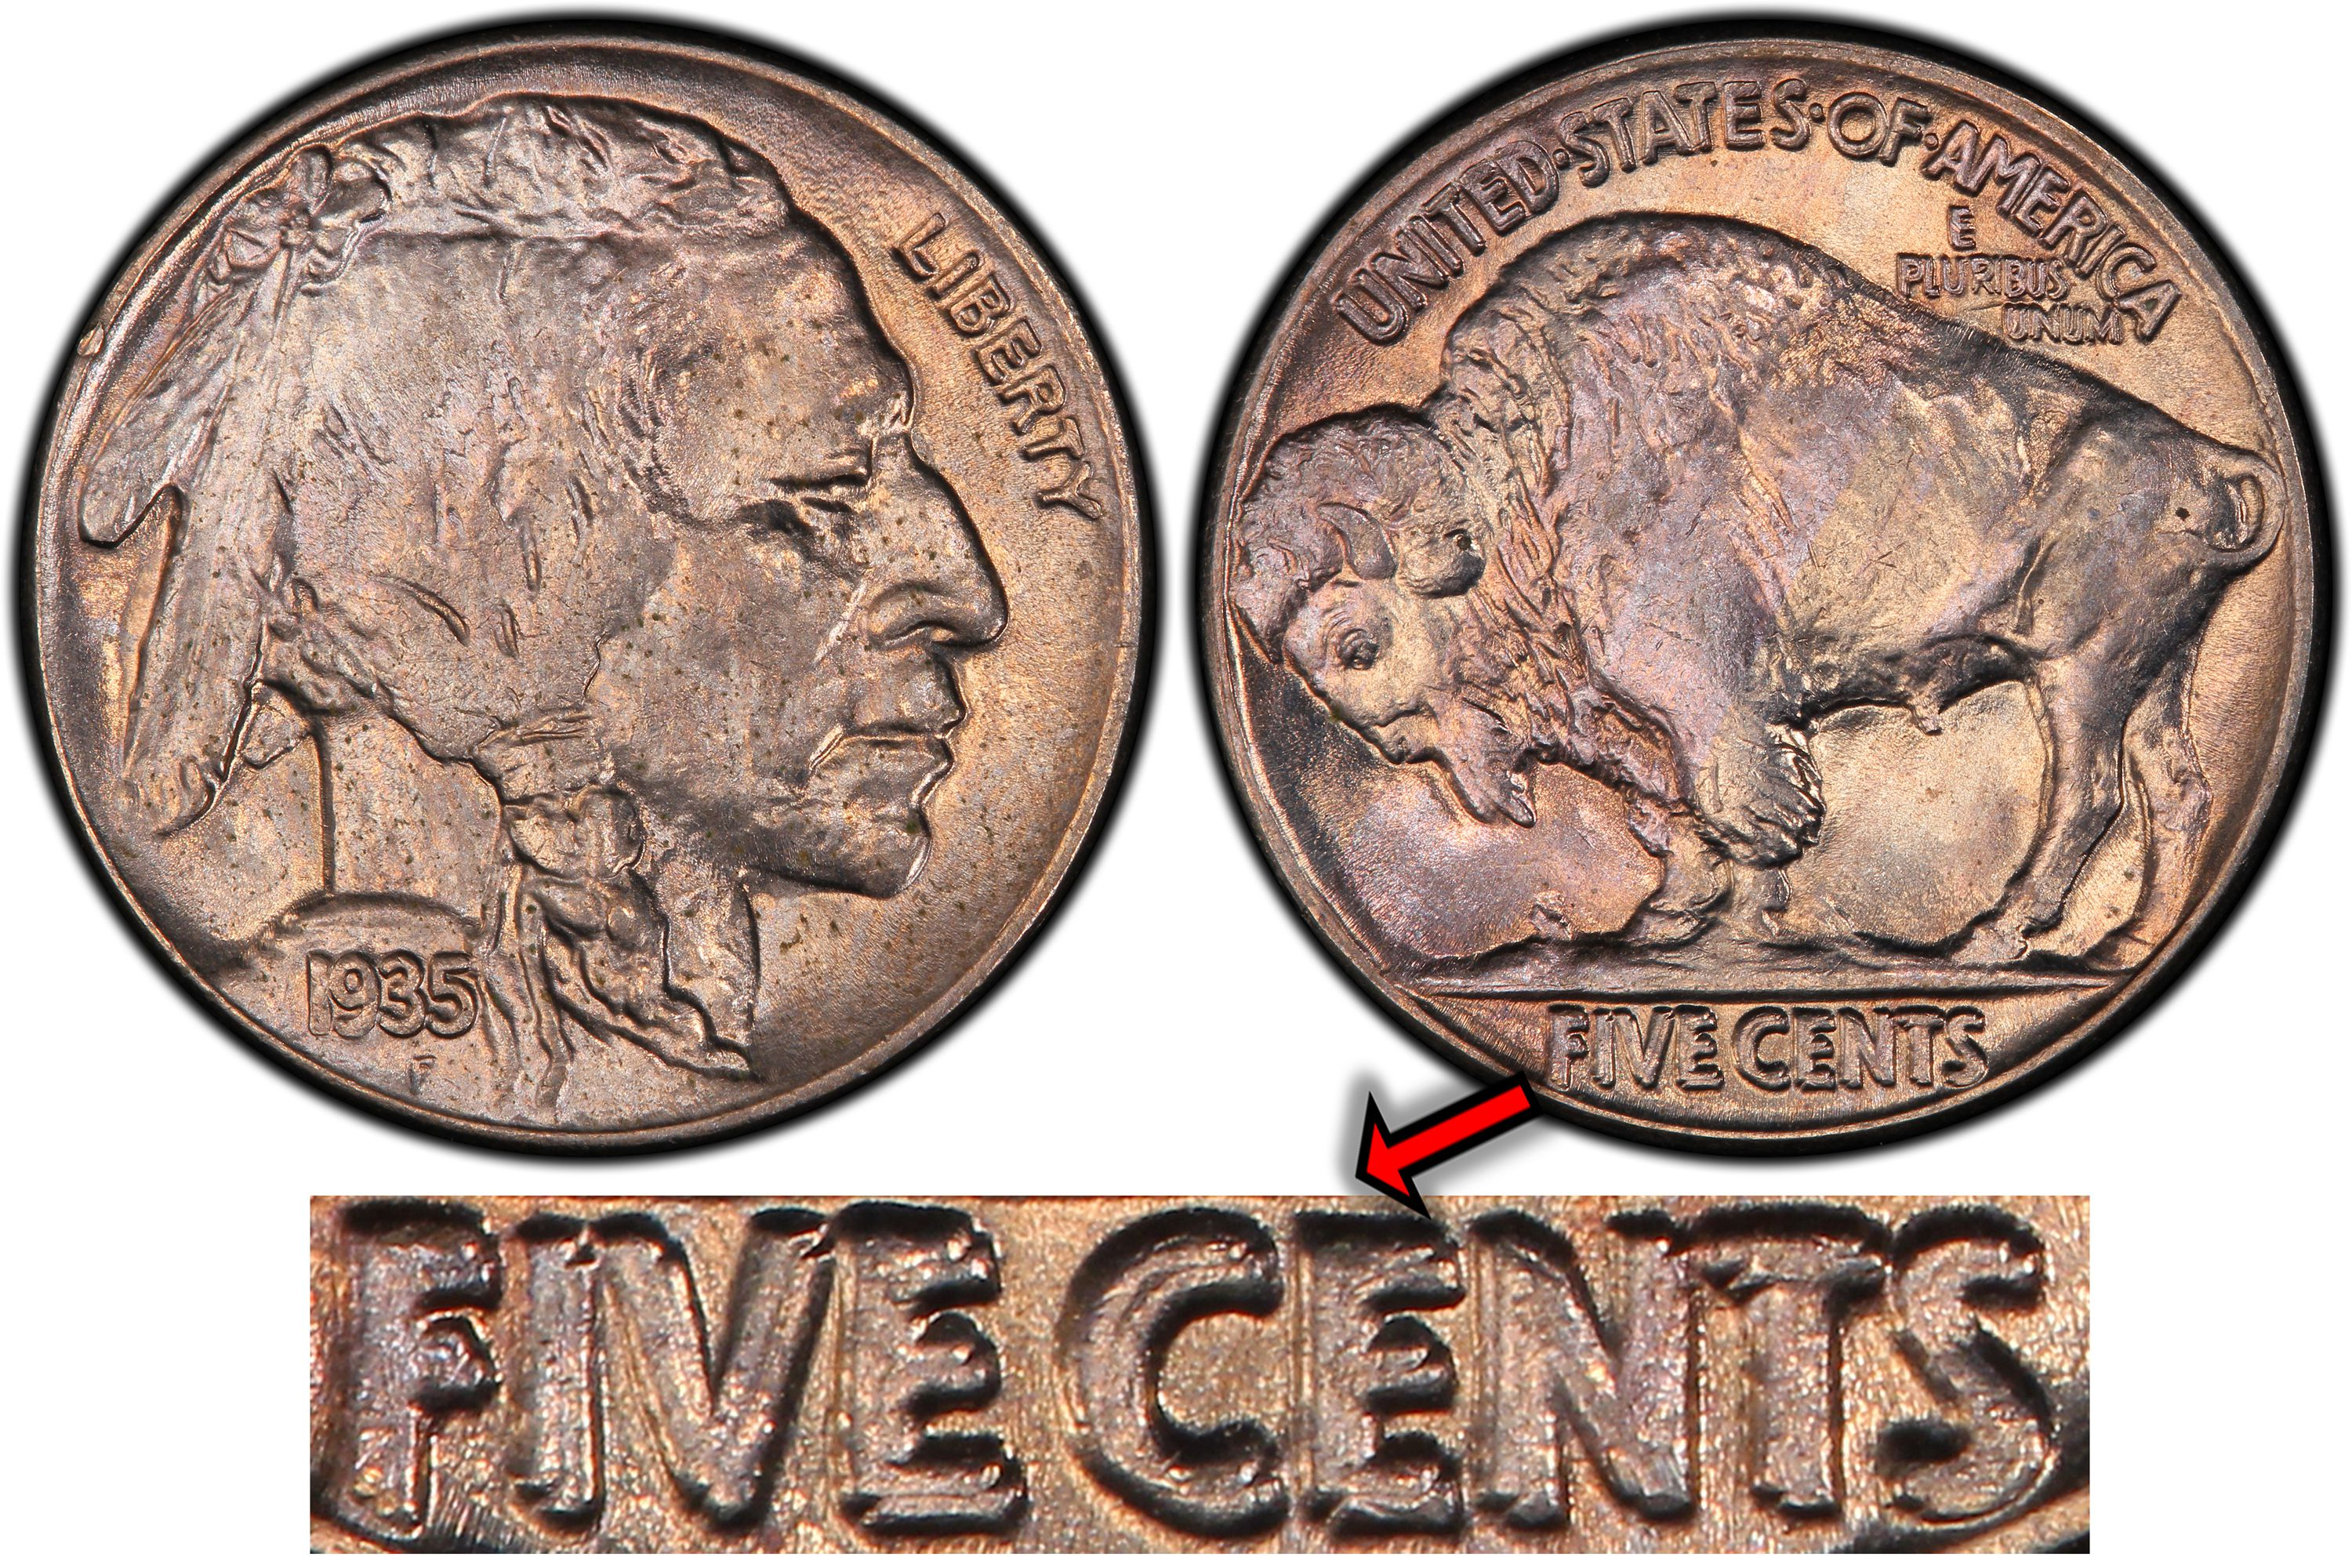 bbcbc80a06c5 1935 Buffalo nickel double die reverse